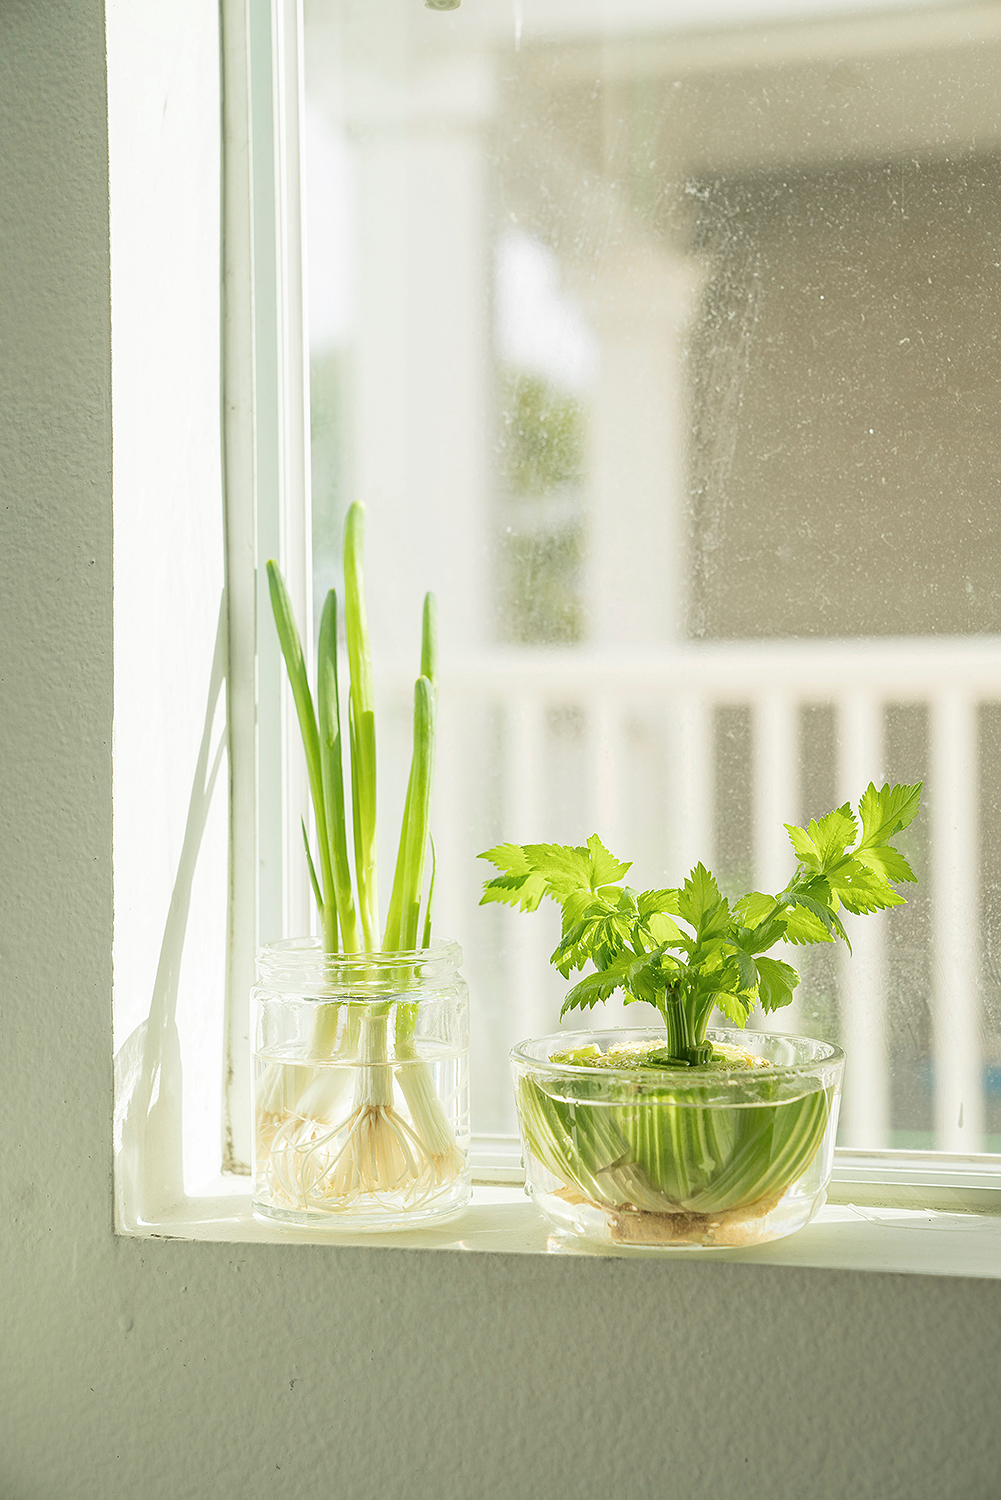 How To Grow Produce From Your Windowsill People Com